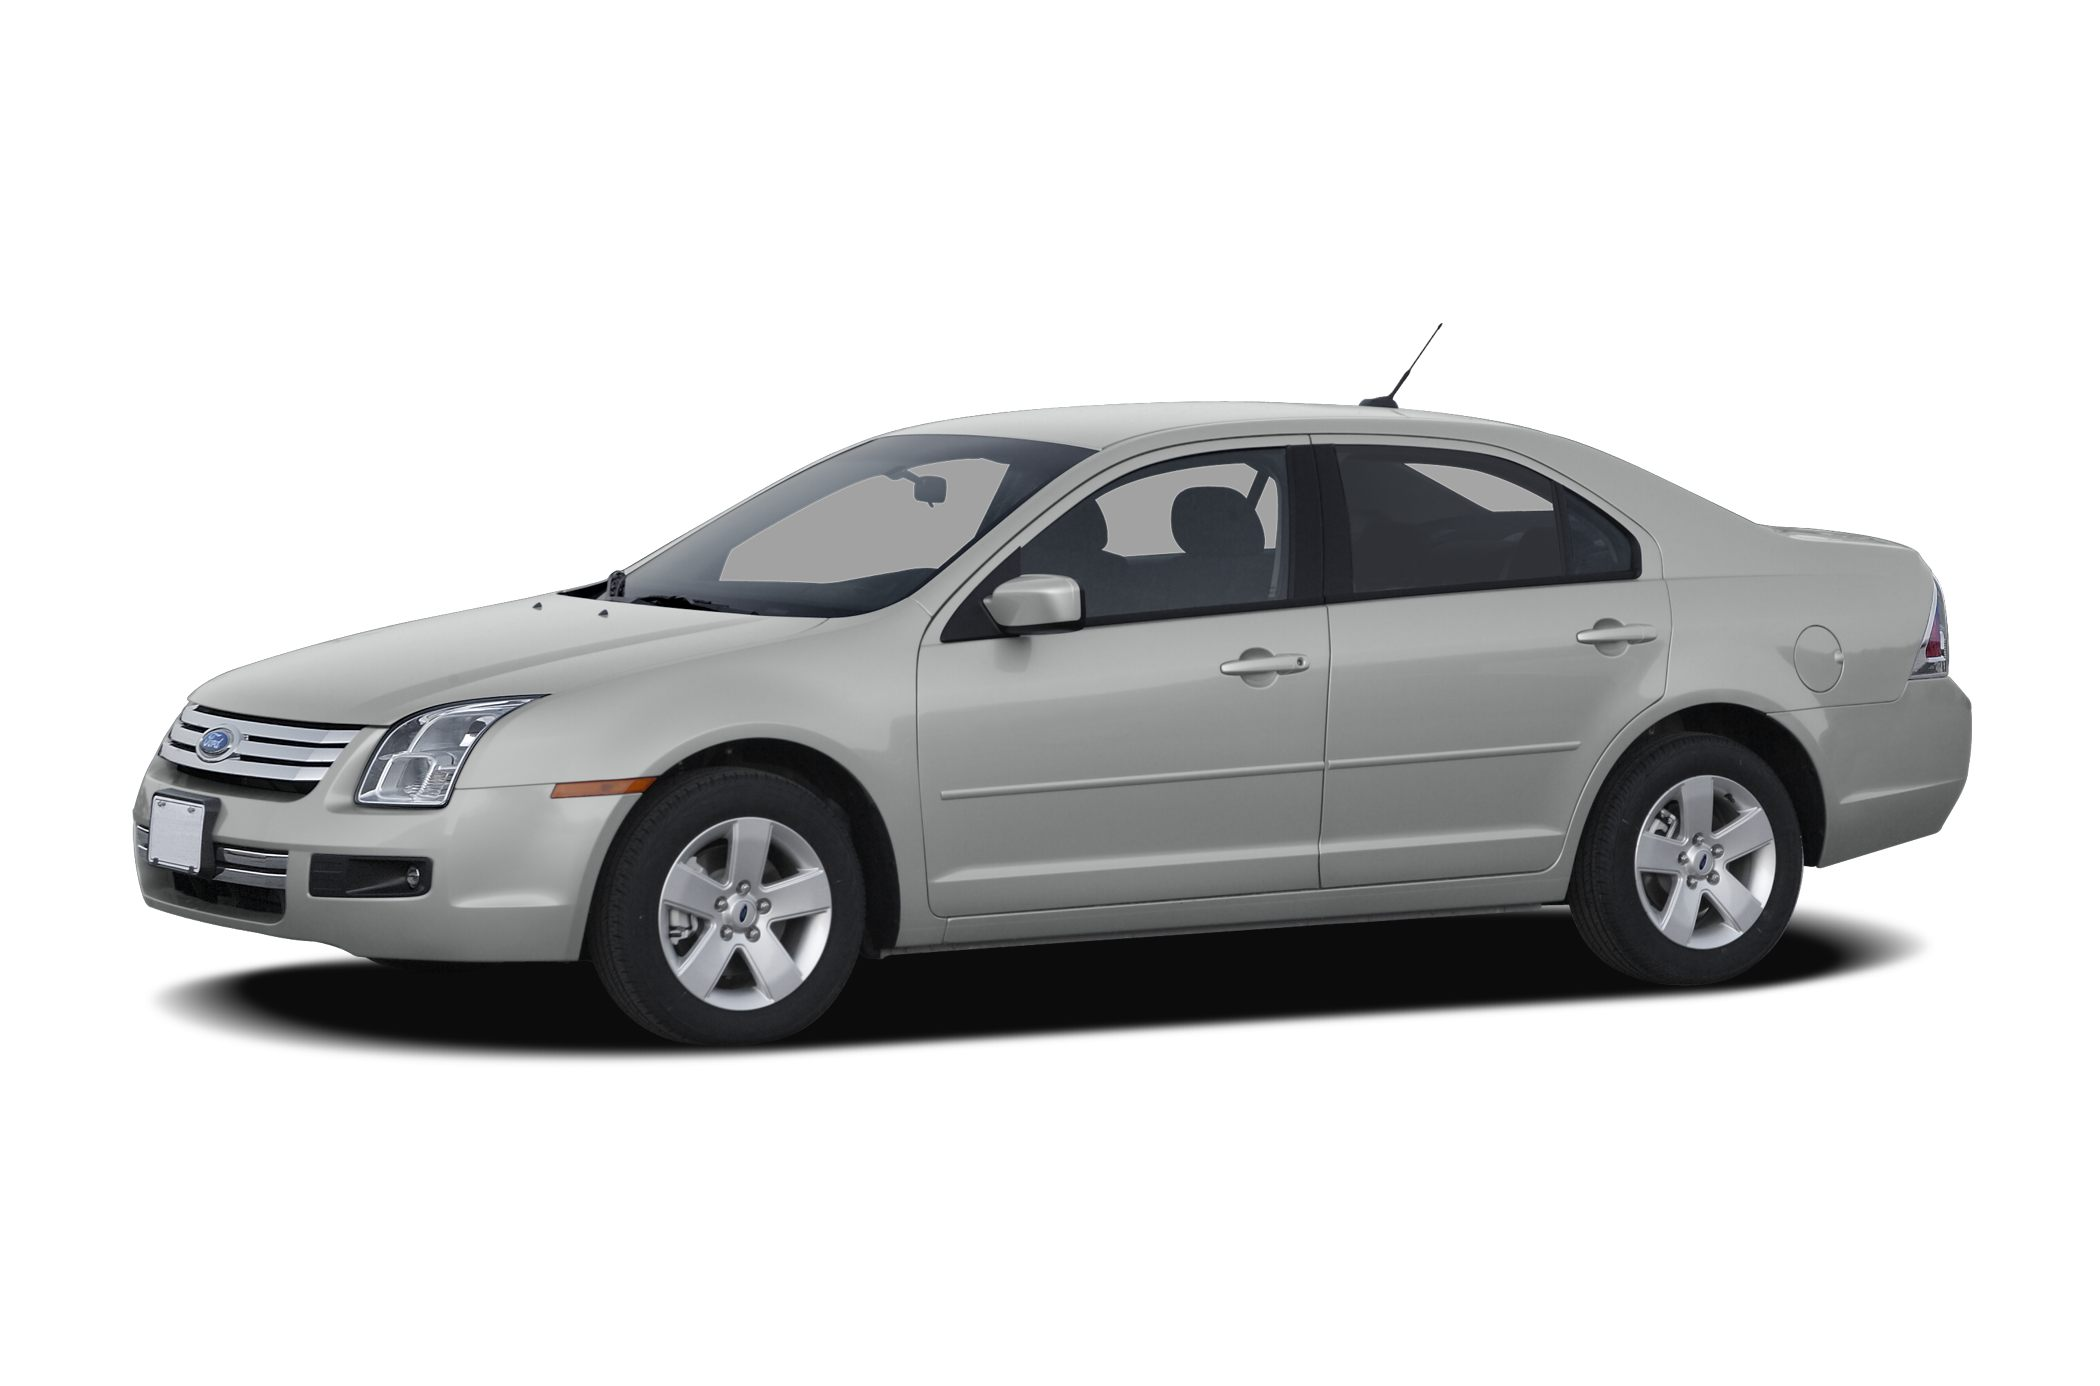 2009 Ford Fusion SE Sedan for sale in Woodville for $8,877 with 89,868 miles